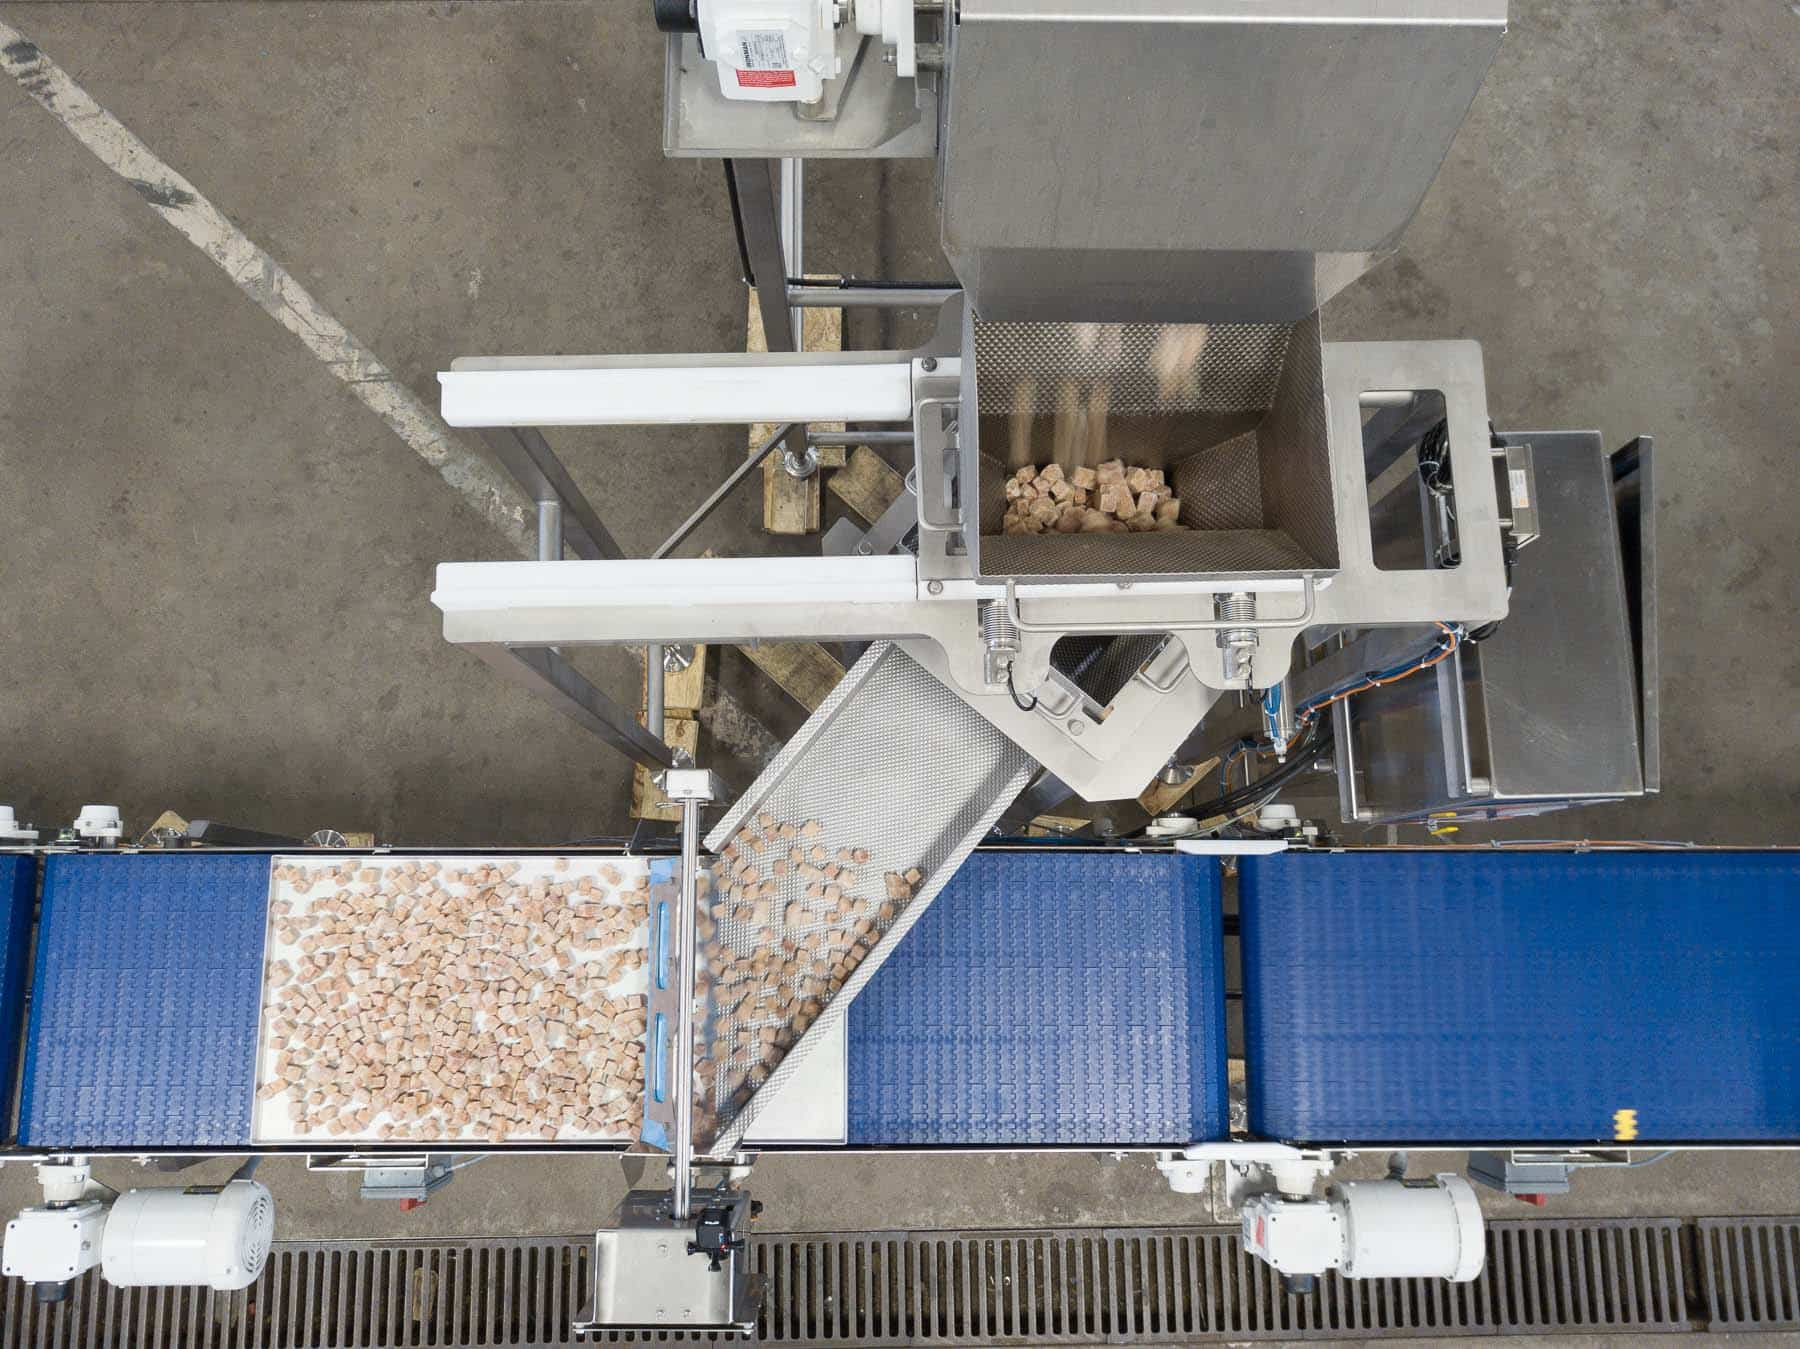 Read more about the article Stainless steel conveyor belts enhance food grade cleanliness